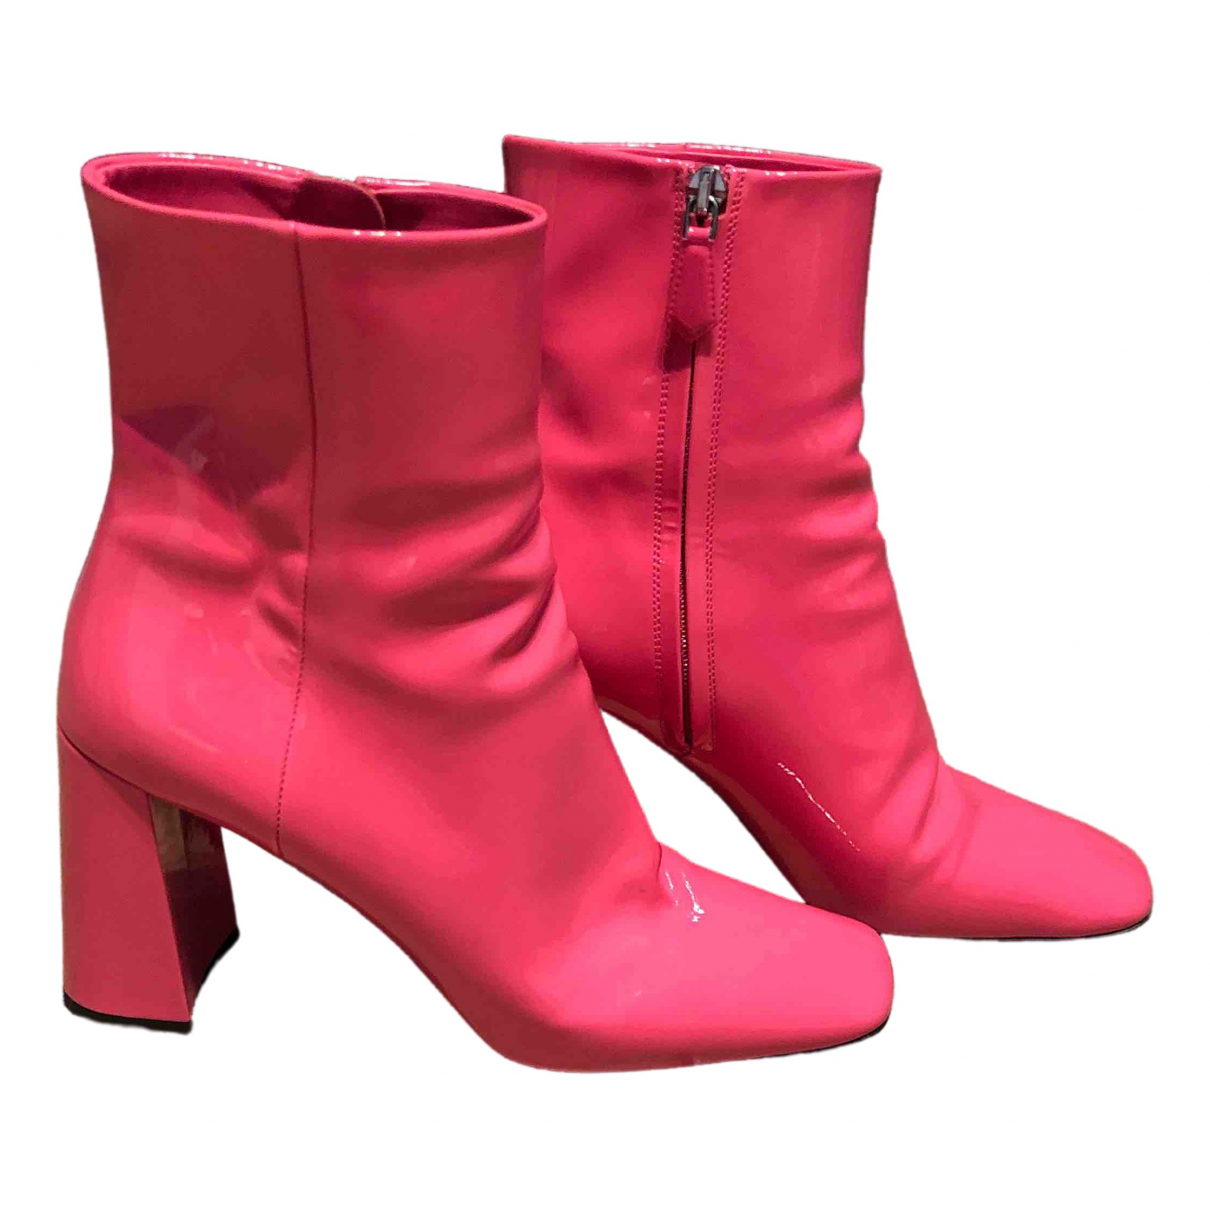 Prada \N Pink Leather Ankle boots for Women 37.5 EU